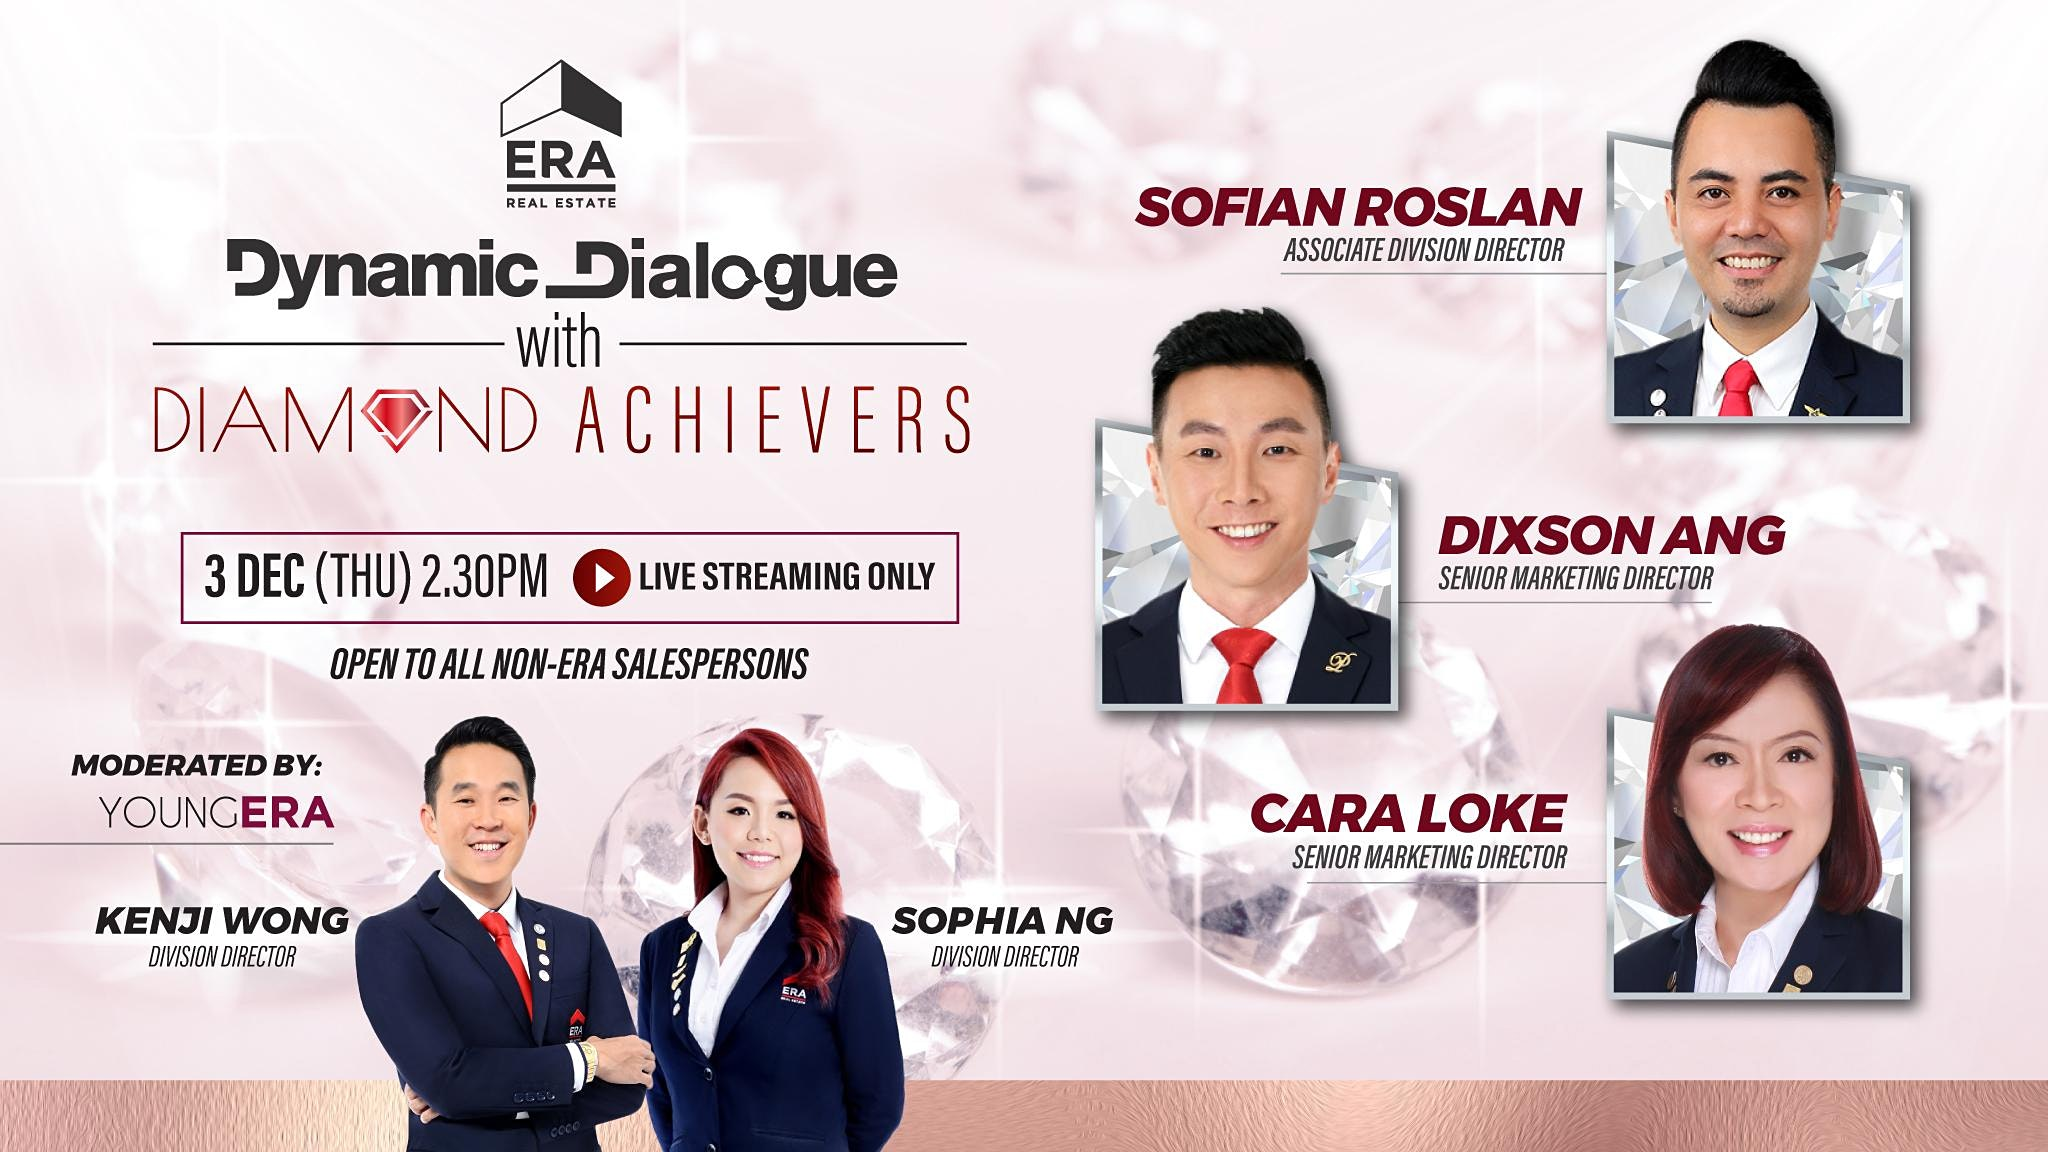 Dynamic Dialogue with Diamond Achievers